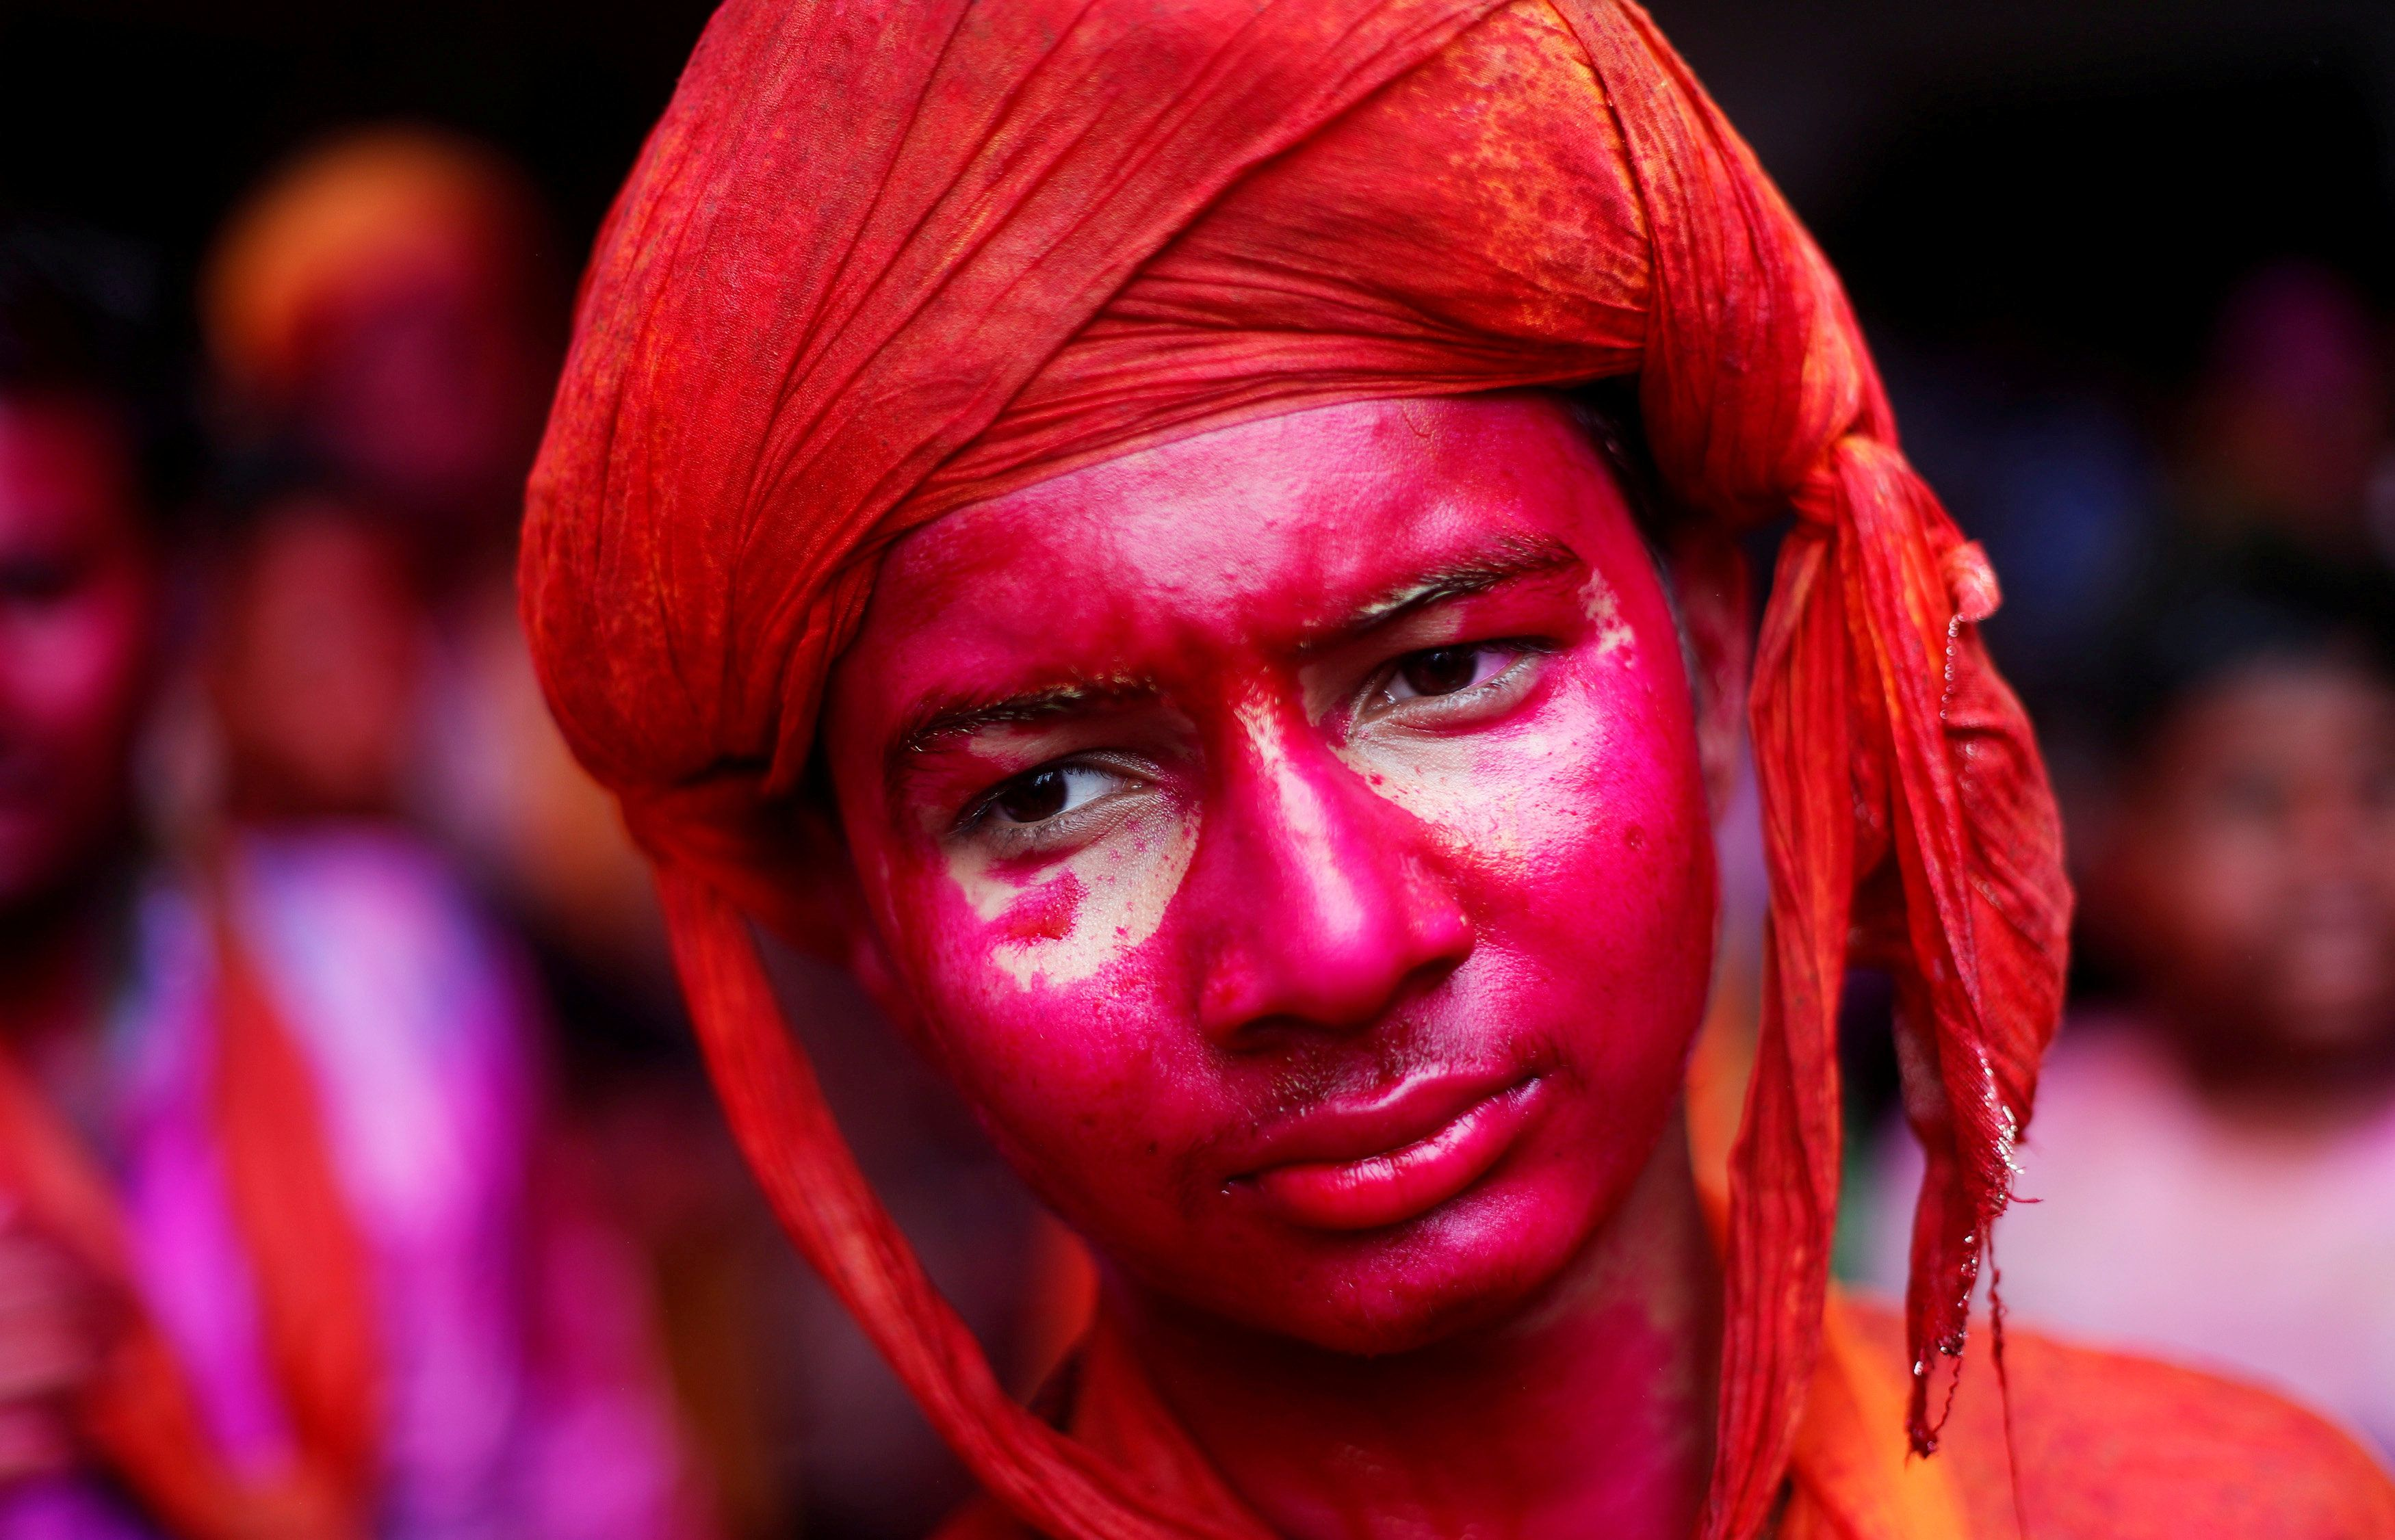 A Hindu devotee takes part in the religious festival of Holi inside a temple in Nandgaon village, in the state of Uttar Pradesh, India, March 16, 2019. REUTERS/Adnan Abidi     TPX IMAGES OF THE DAY